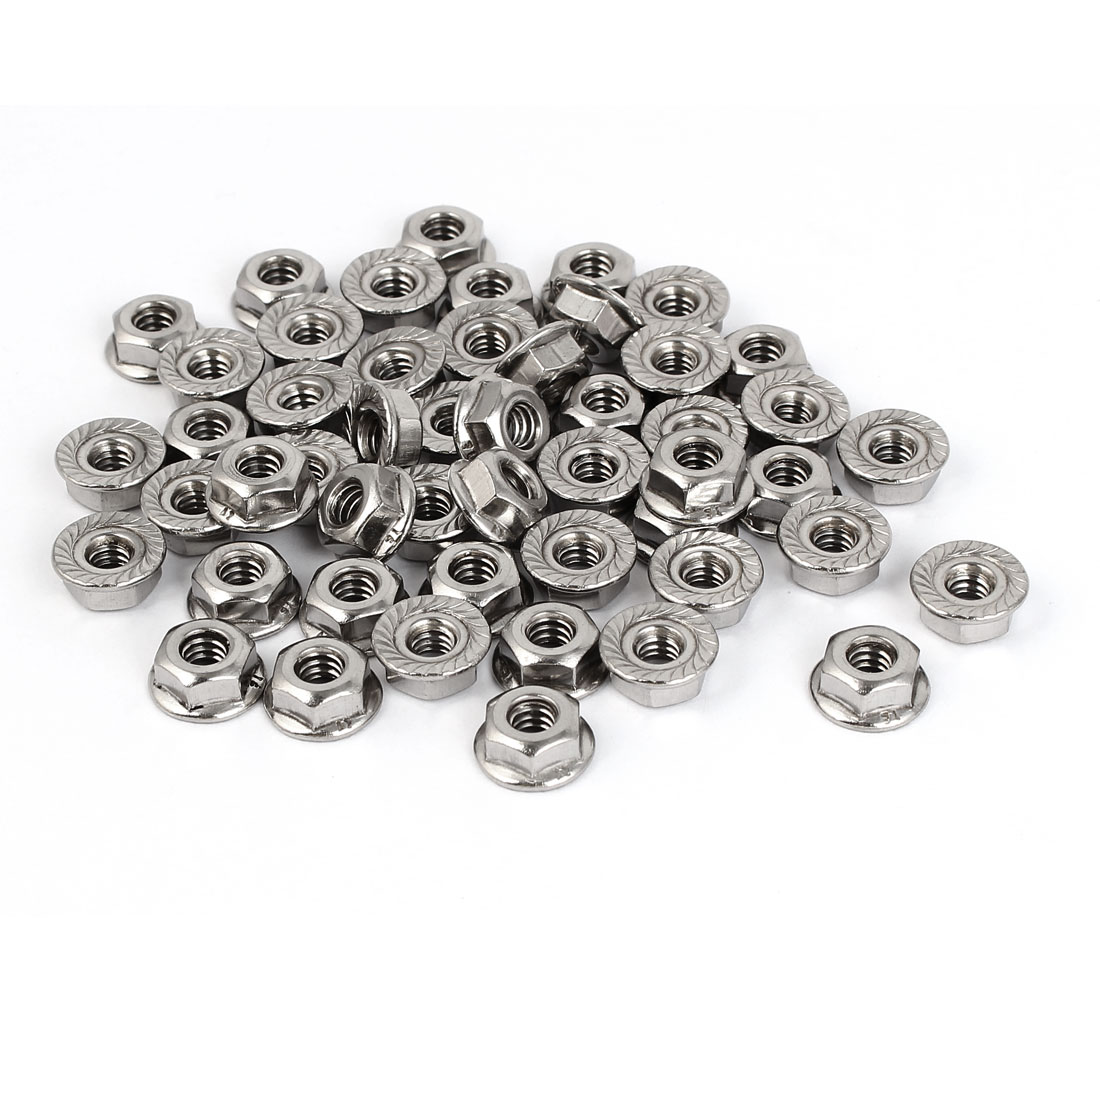 10#-24 304 Stainless Steel Serrated Flange Hex Machine Screw Lock Nuts 50pcs